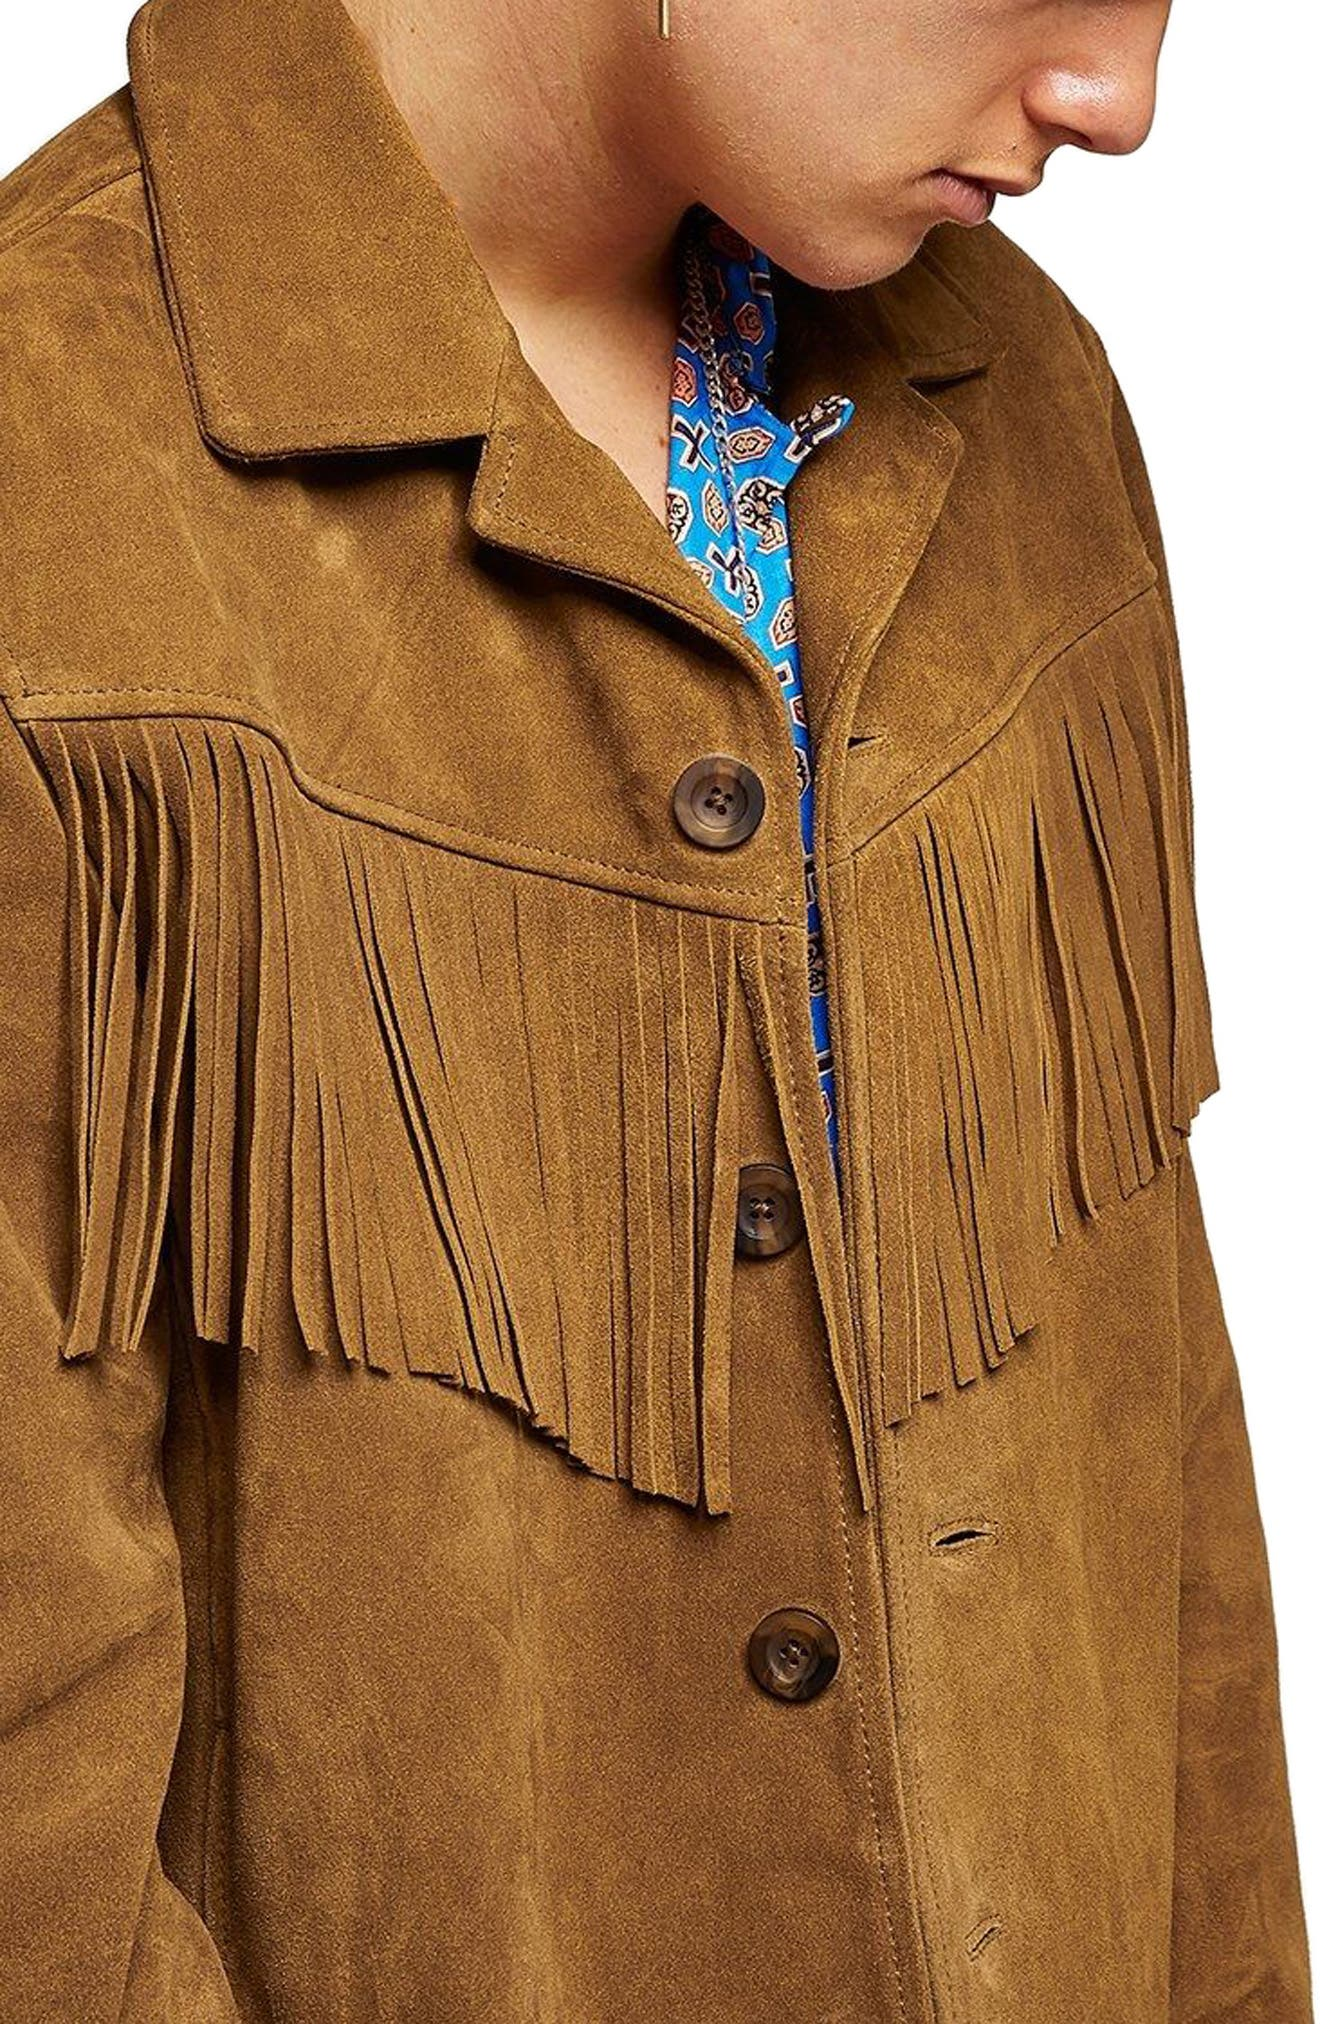 Fringed Suede Western Jacket,                         Main,                         color,